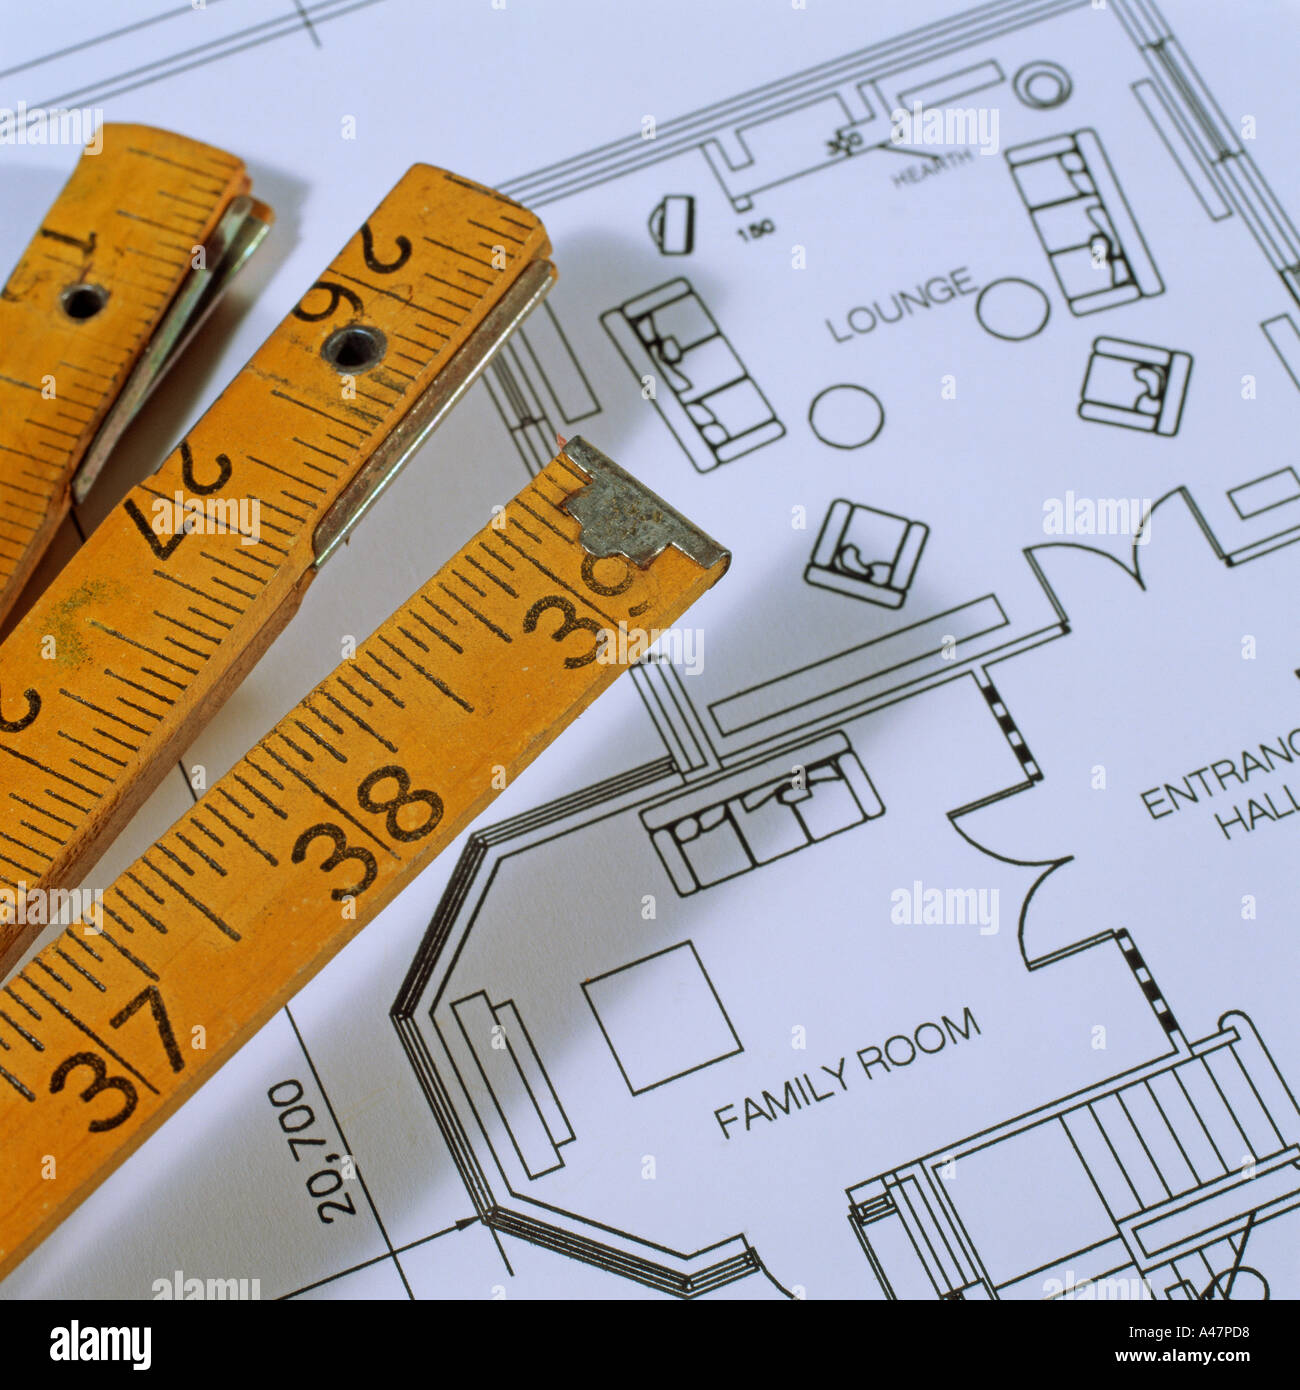 Extendable ruler and architectural blueprints - Stock Image